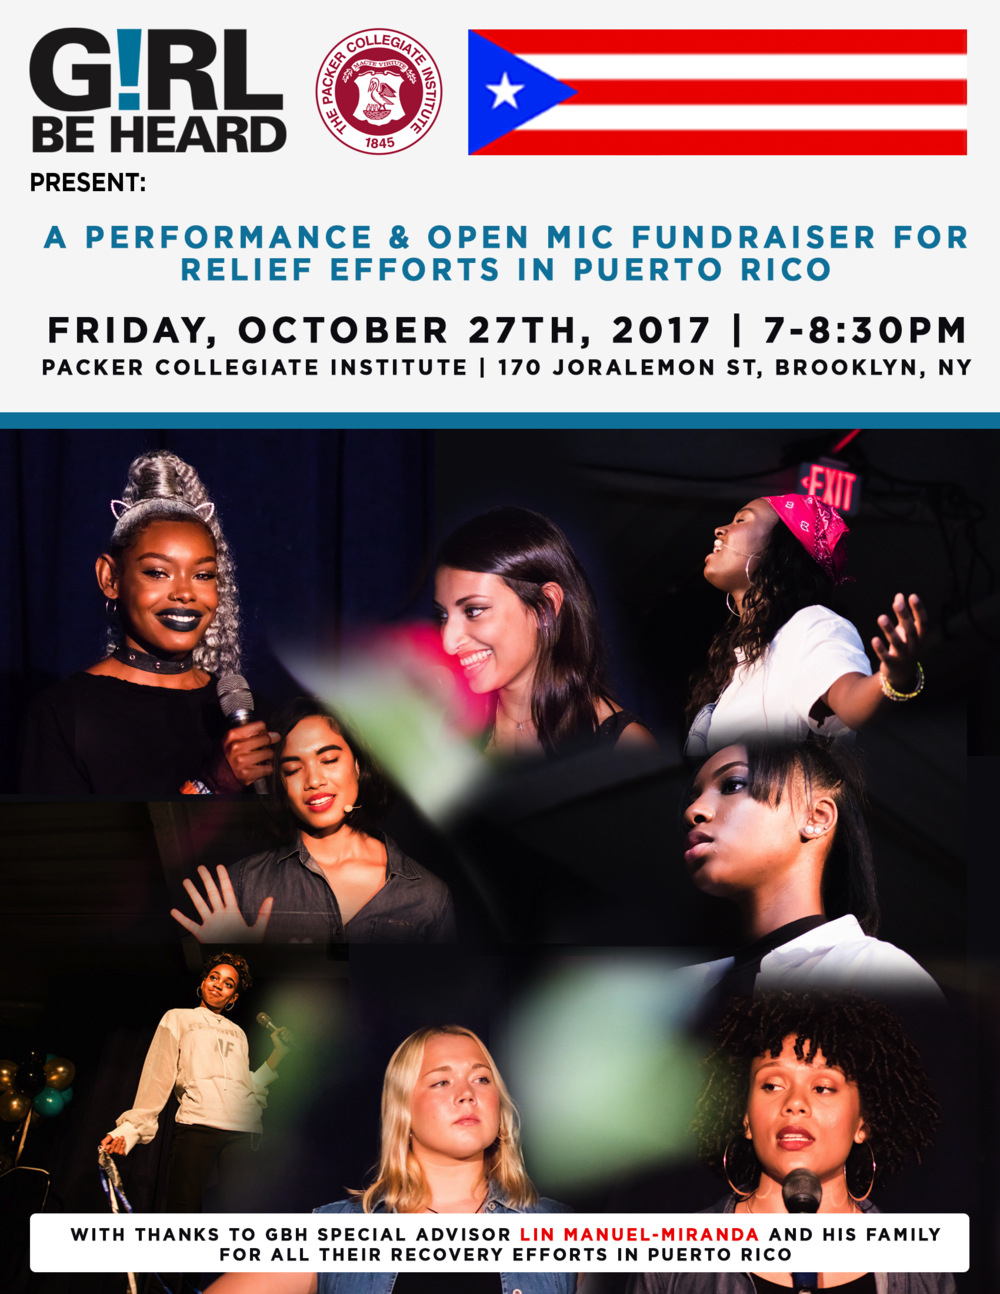 Fundraiser For Puerto Rico!!! - Friday, October 27th we will be having a fundraiser from 7-8:30PM. Please join us at the performance & open mic for Puerto Rico relief. Packer Collegiate Institute 170 Joralemon St Brooklyn, NYSee you there!